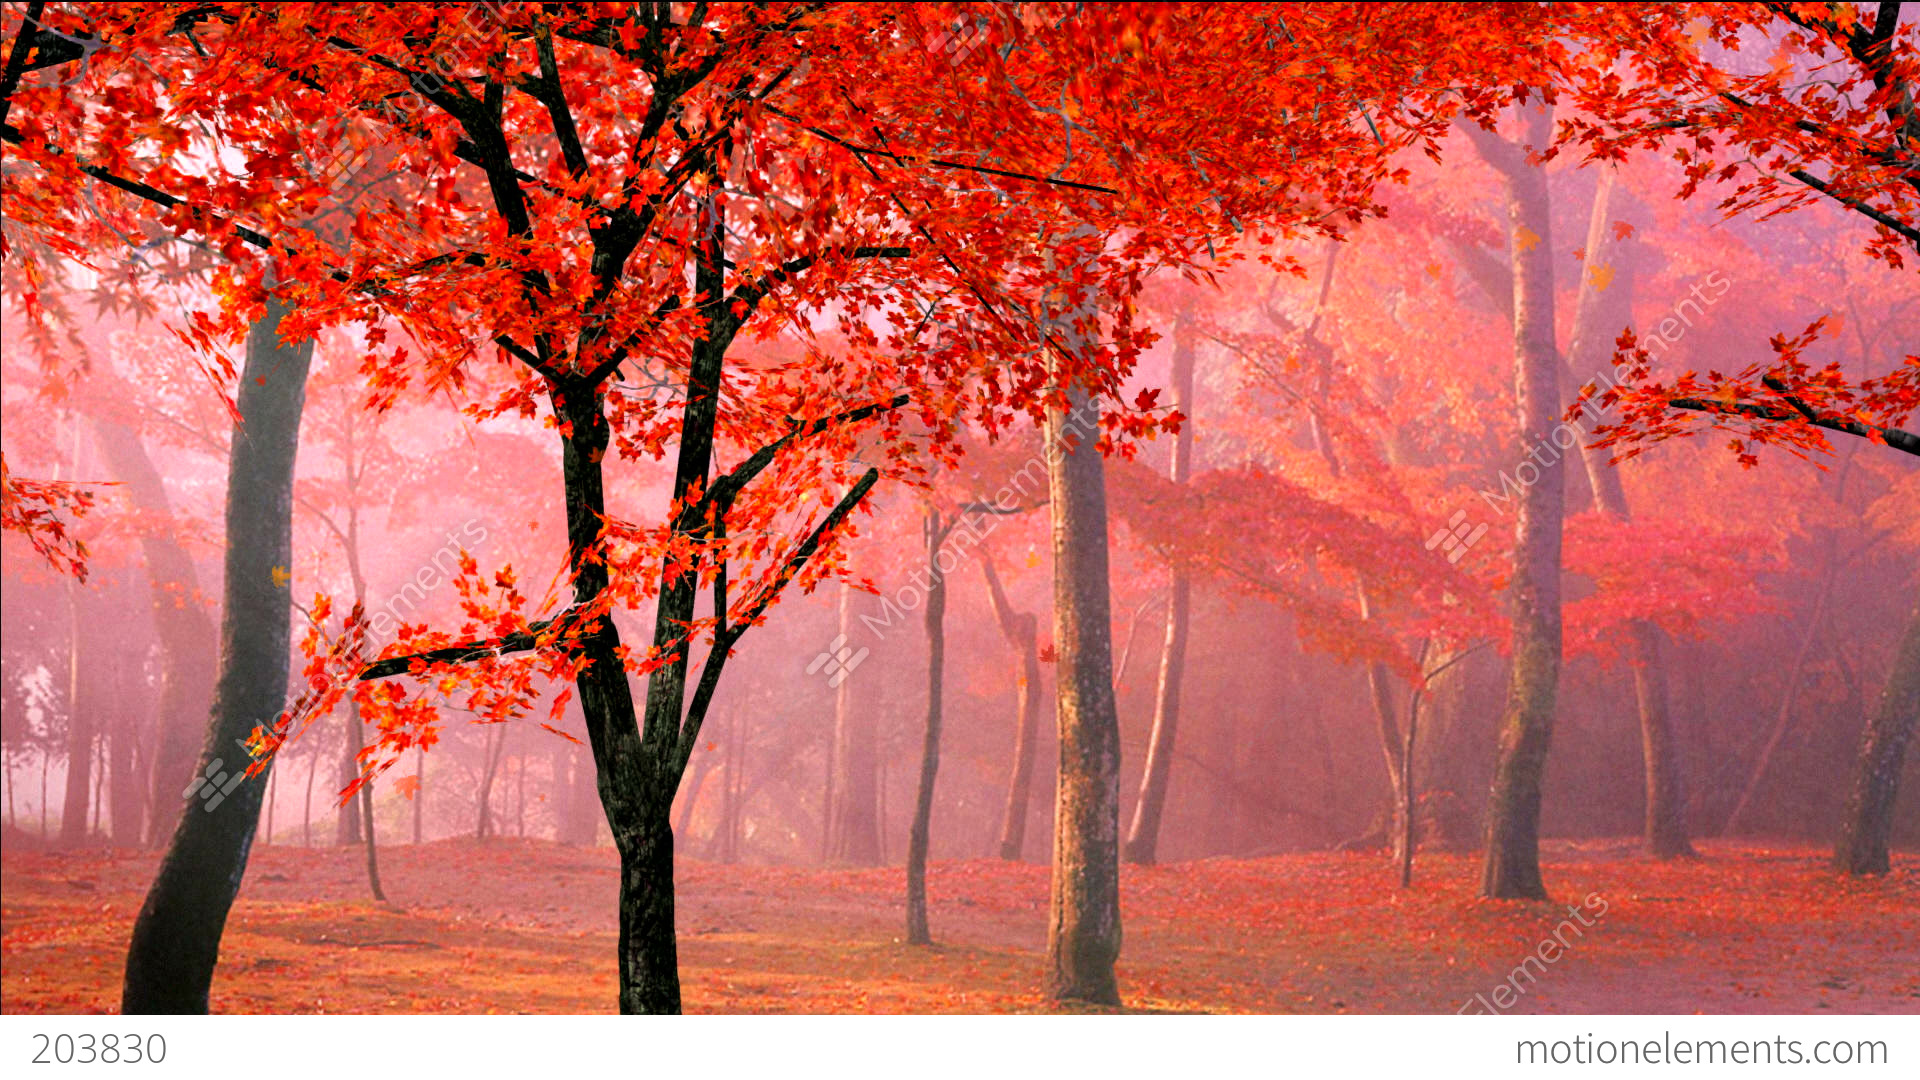 Red Maple Leaves Falling In Wind Stock Animation | 203830